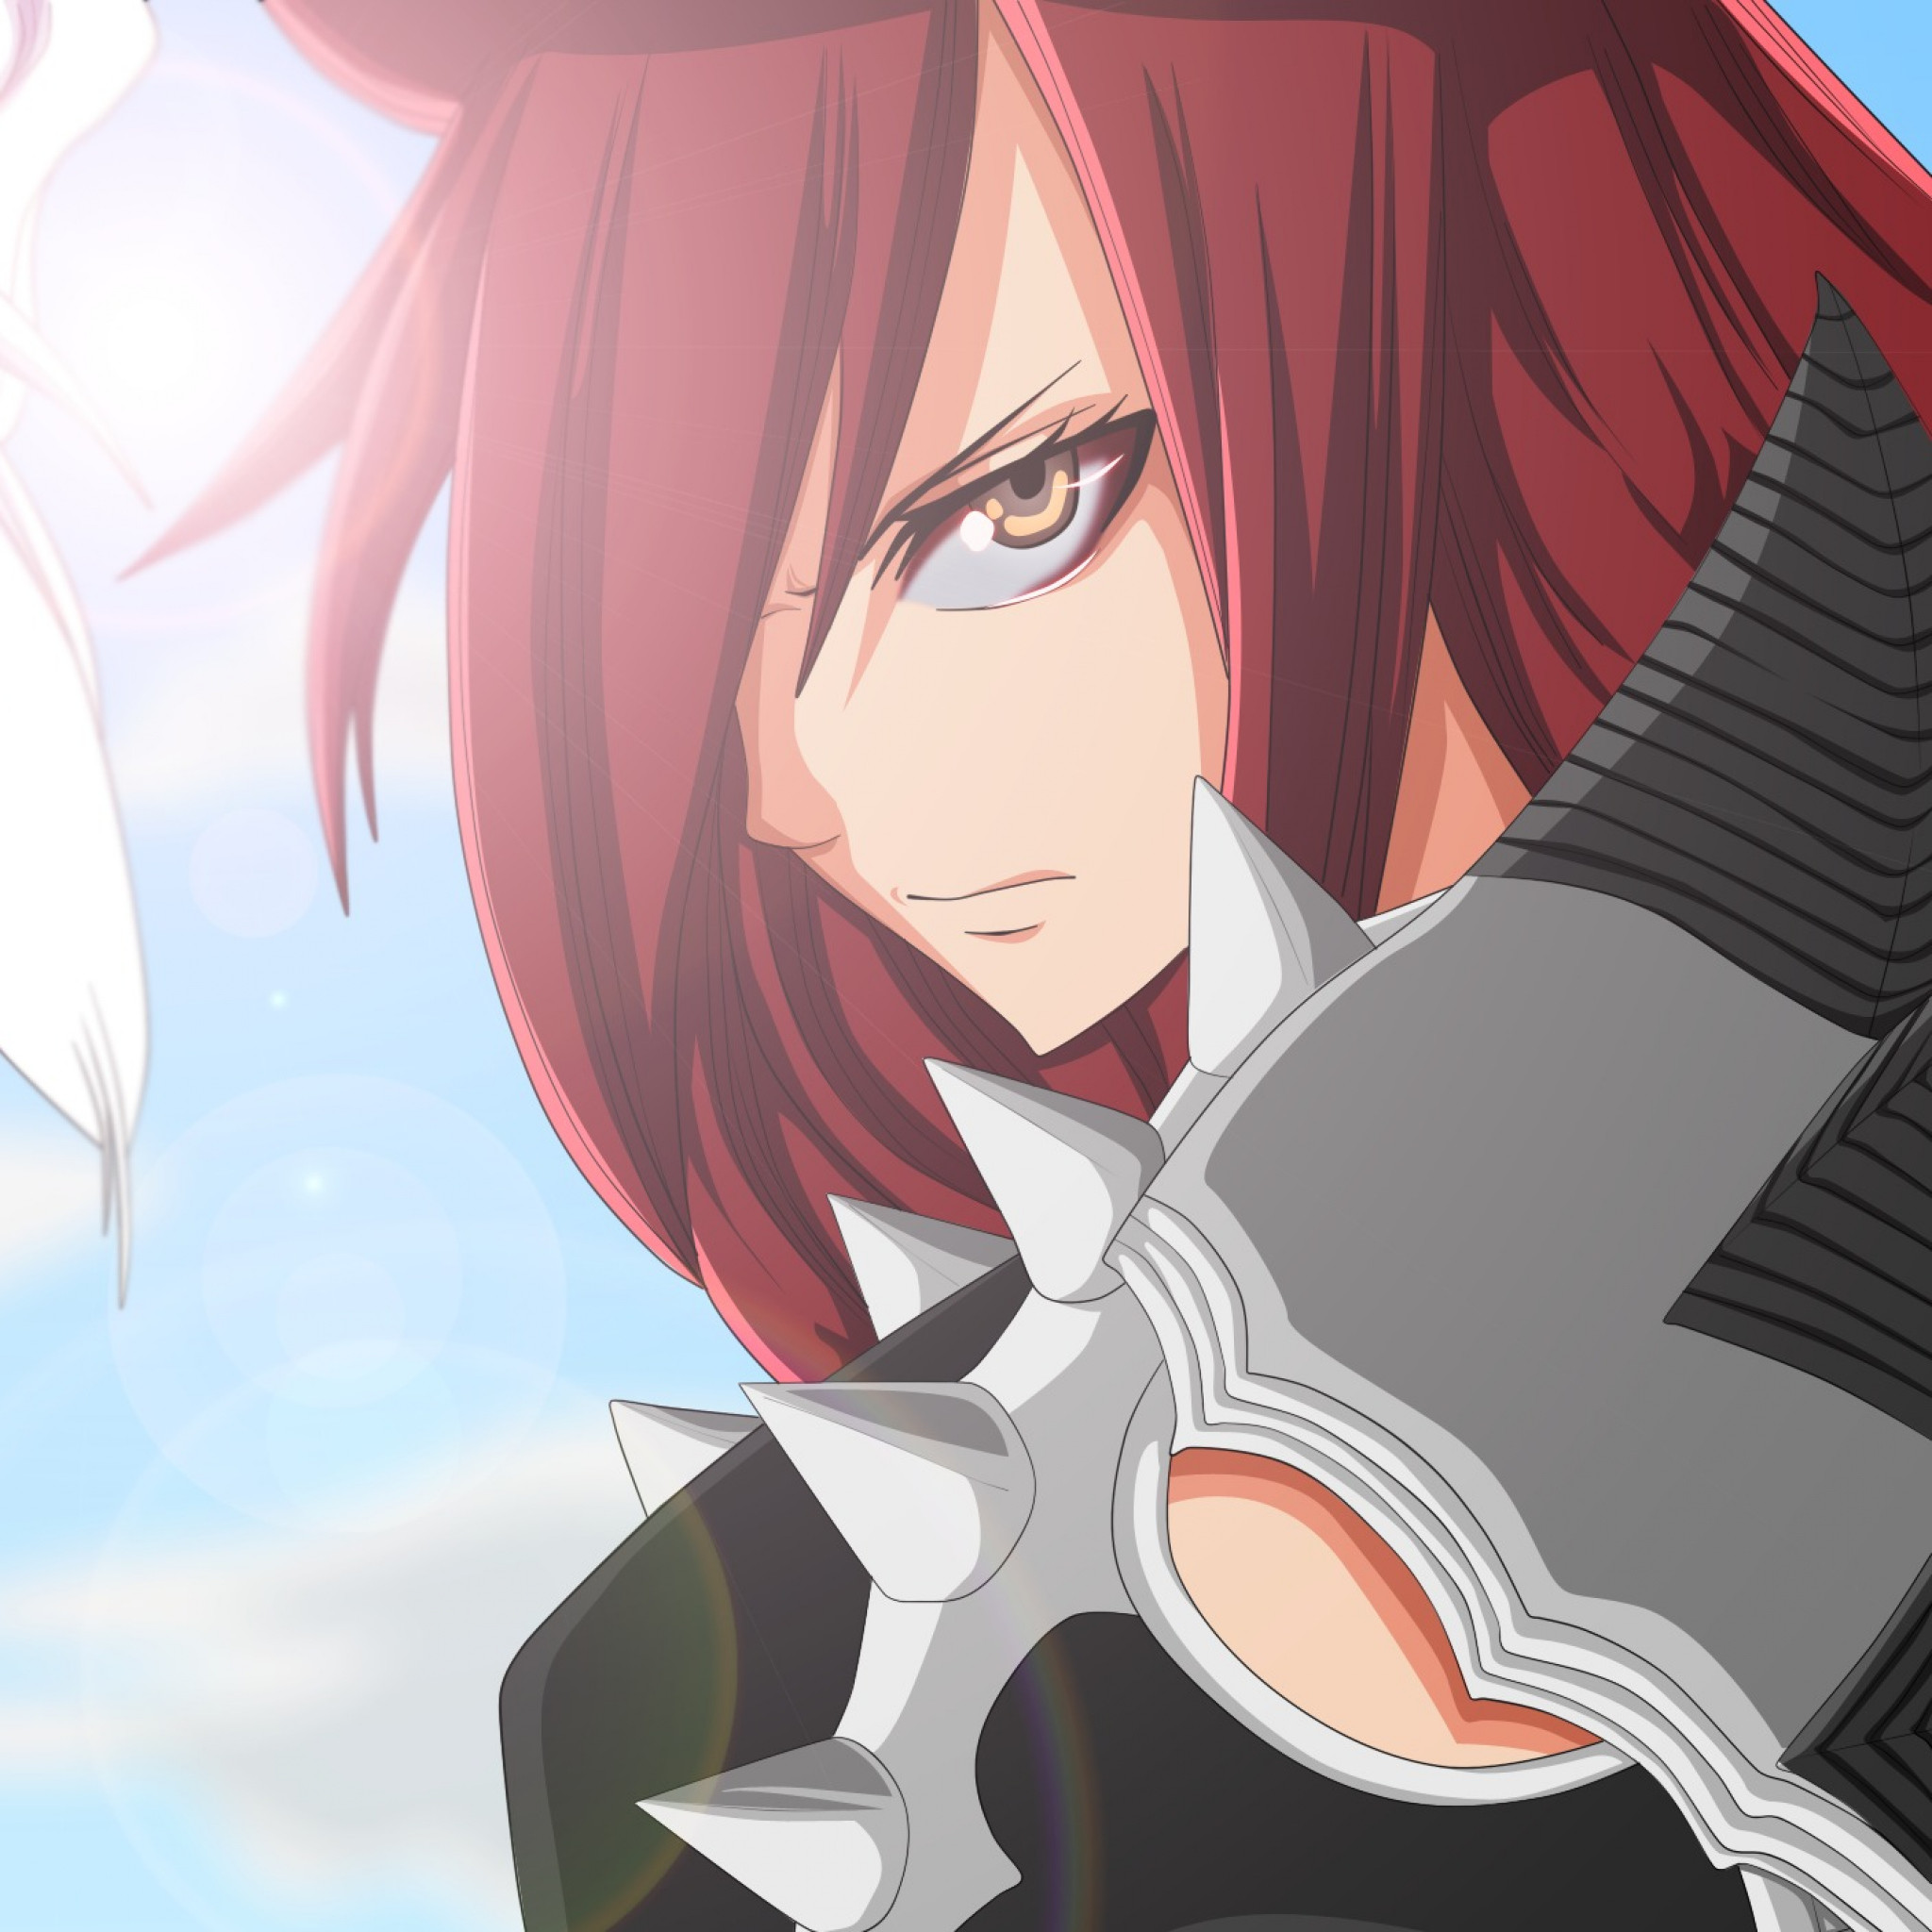 2048x2048  Wallpaper fairy tail, erza scarlet, mirajane strauss, face,  anime, girl